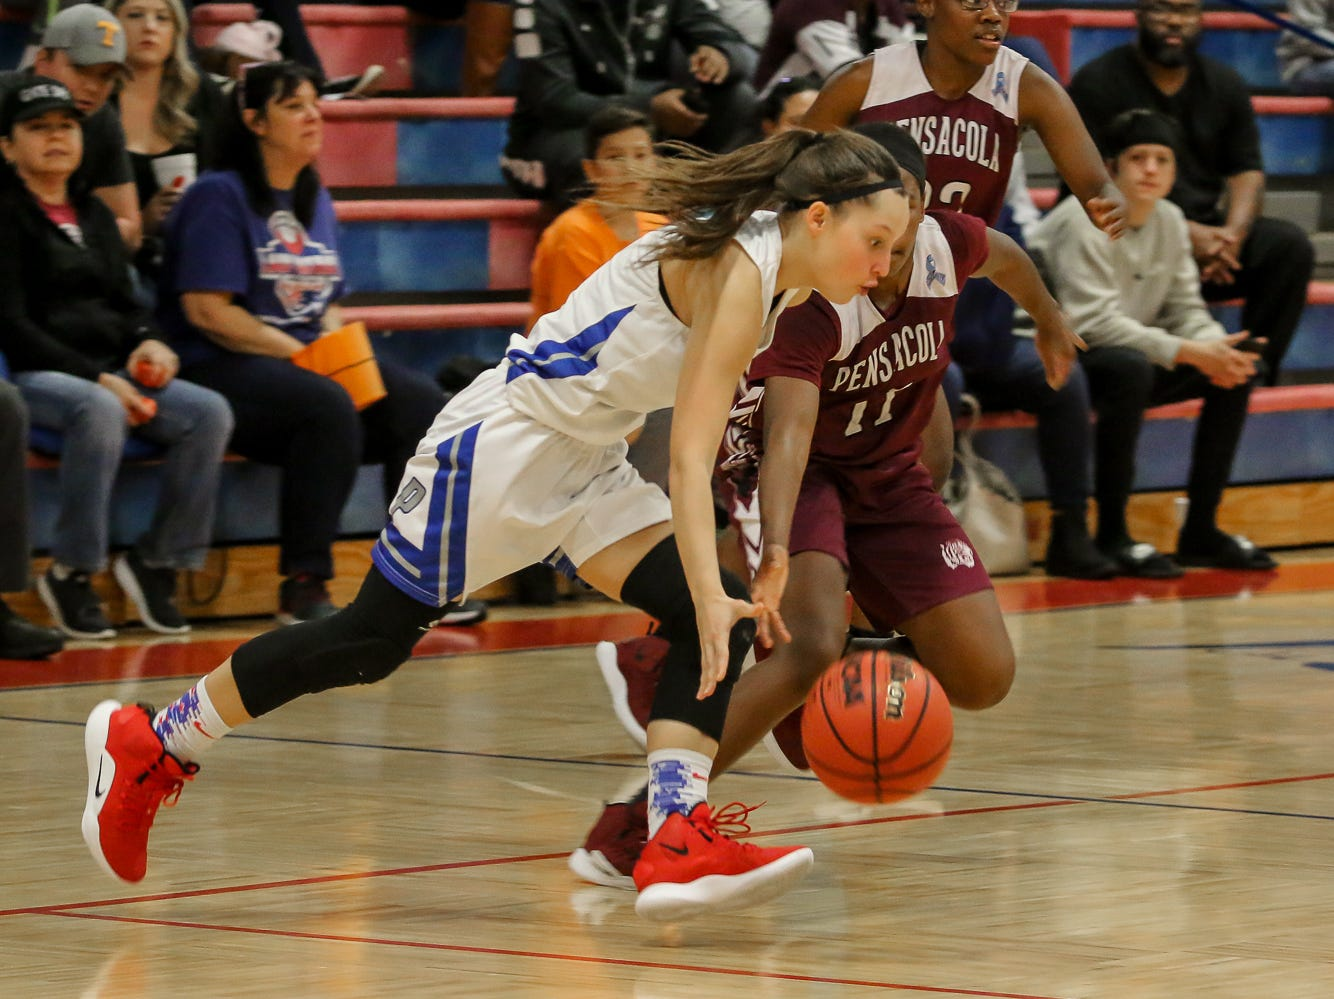 Pace's Katie Brabham (11) dribbles the ball around PHS' Nala Baker (11) at Pace High School on Friday, January 4, 2019.